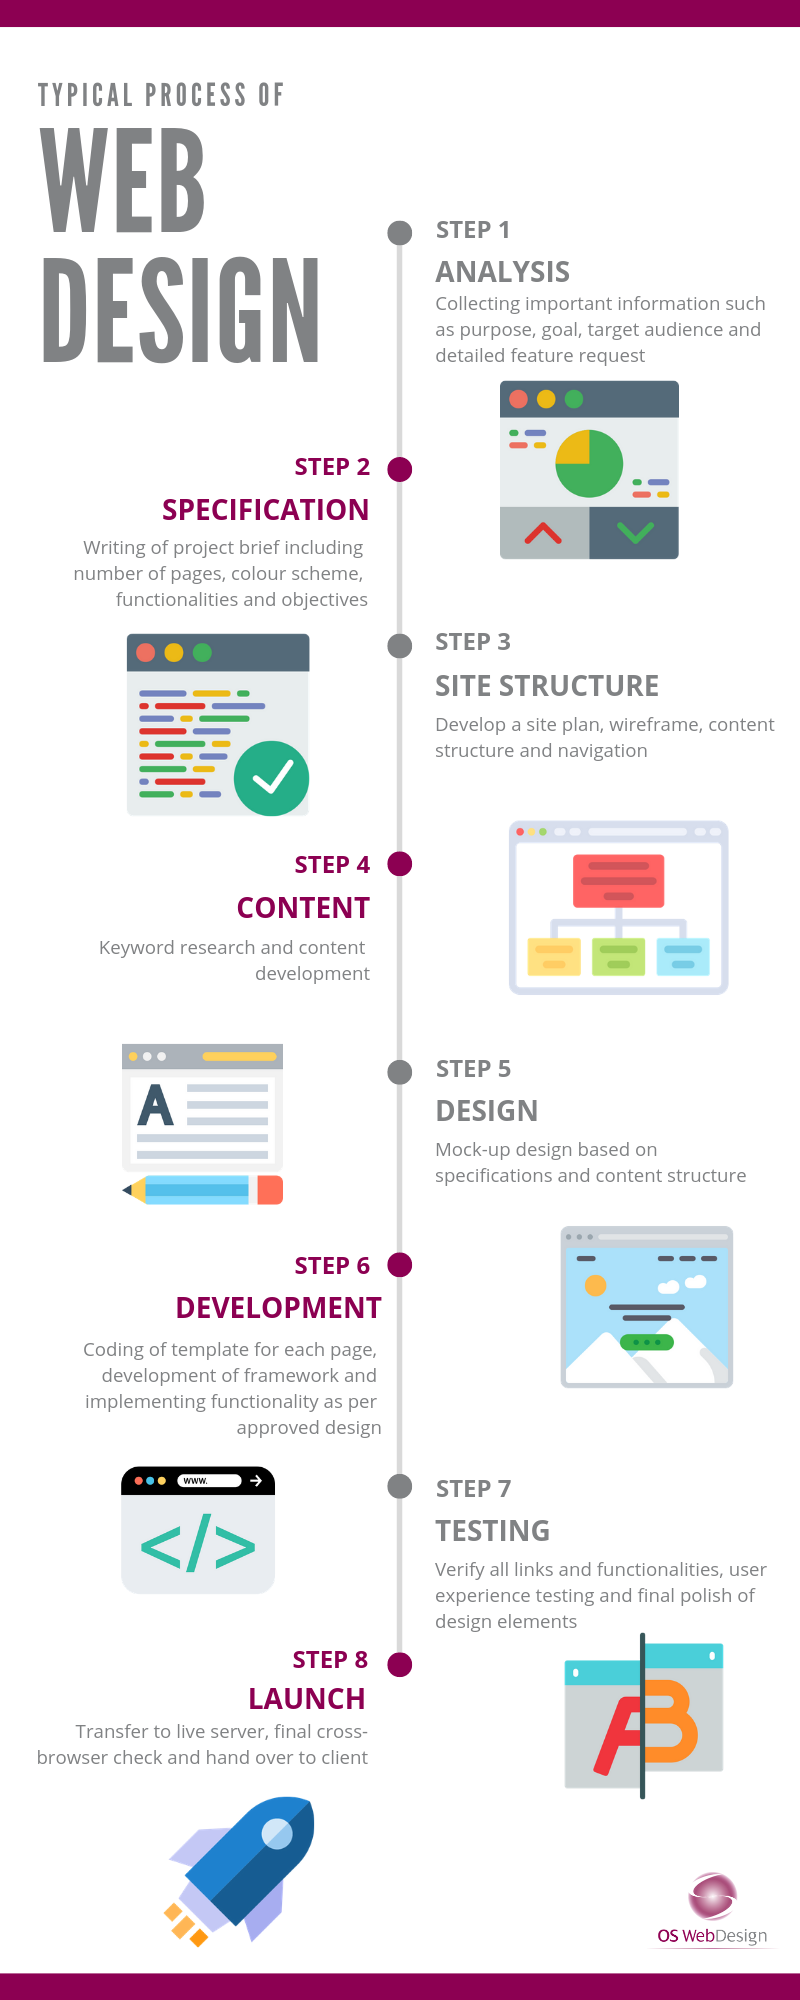 A typical web design process by OS WebDesign